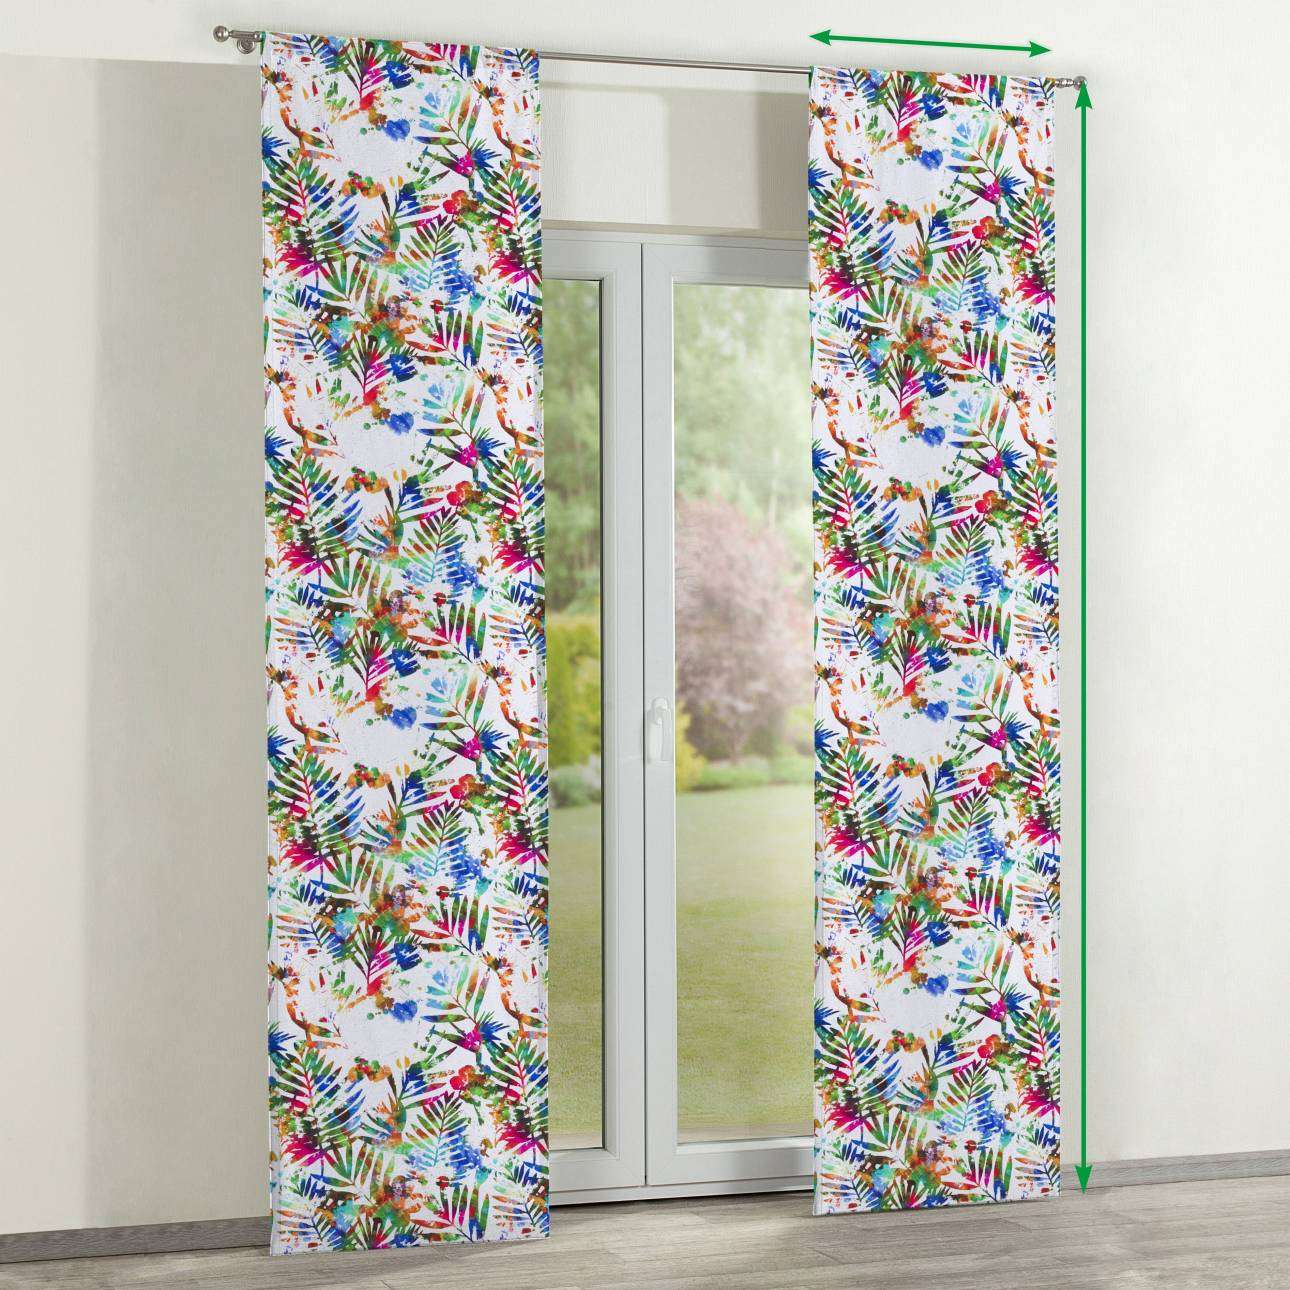 Slot panel curtains – Set of 2 in collection New Art, fabric: 140-22